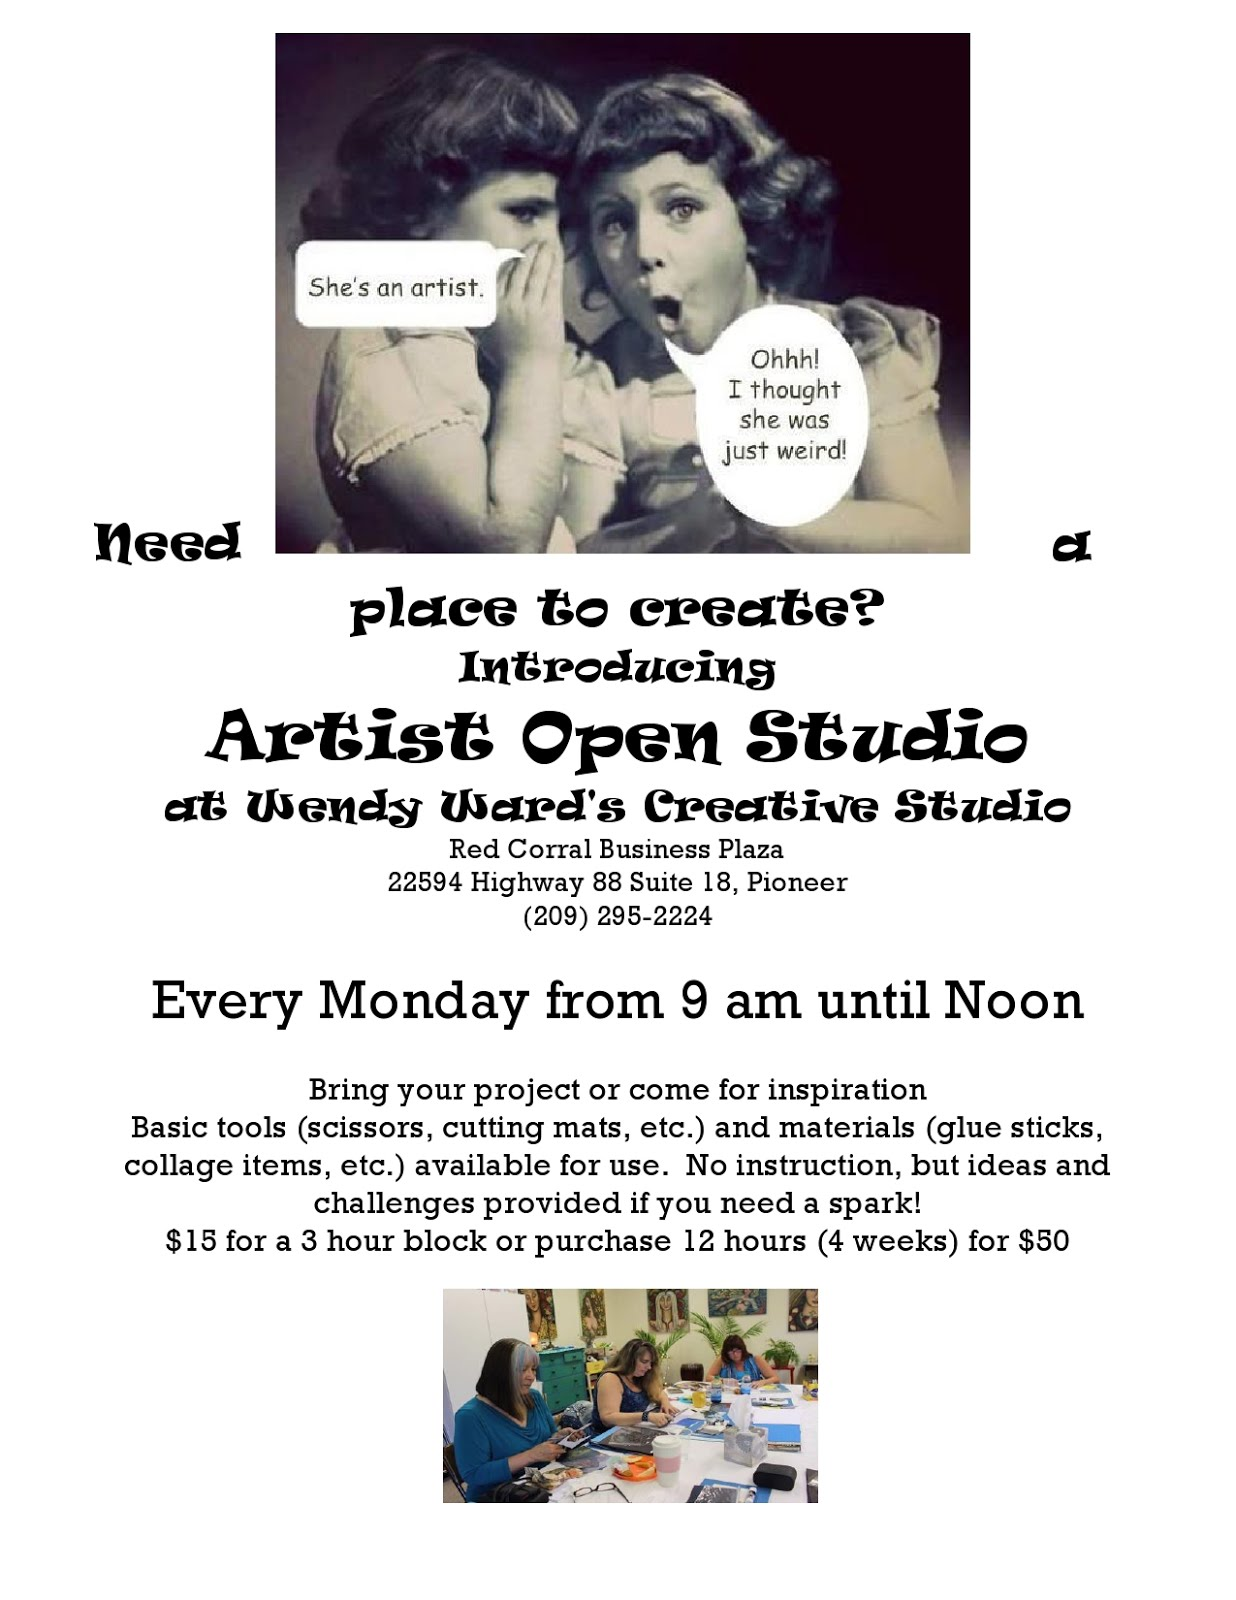 Artist Open Studio at Wendy Ward's Creative Studio - Mondays from 9AM-12 Noon